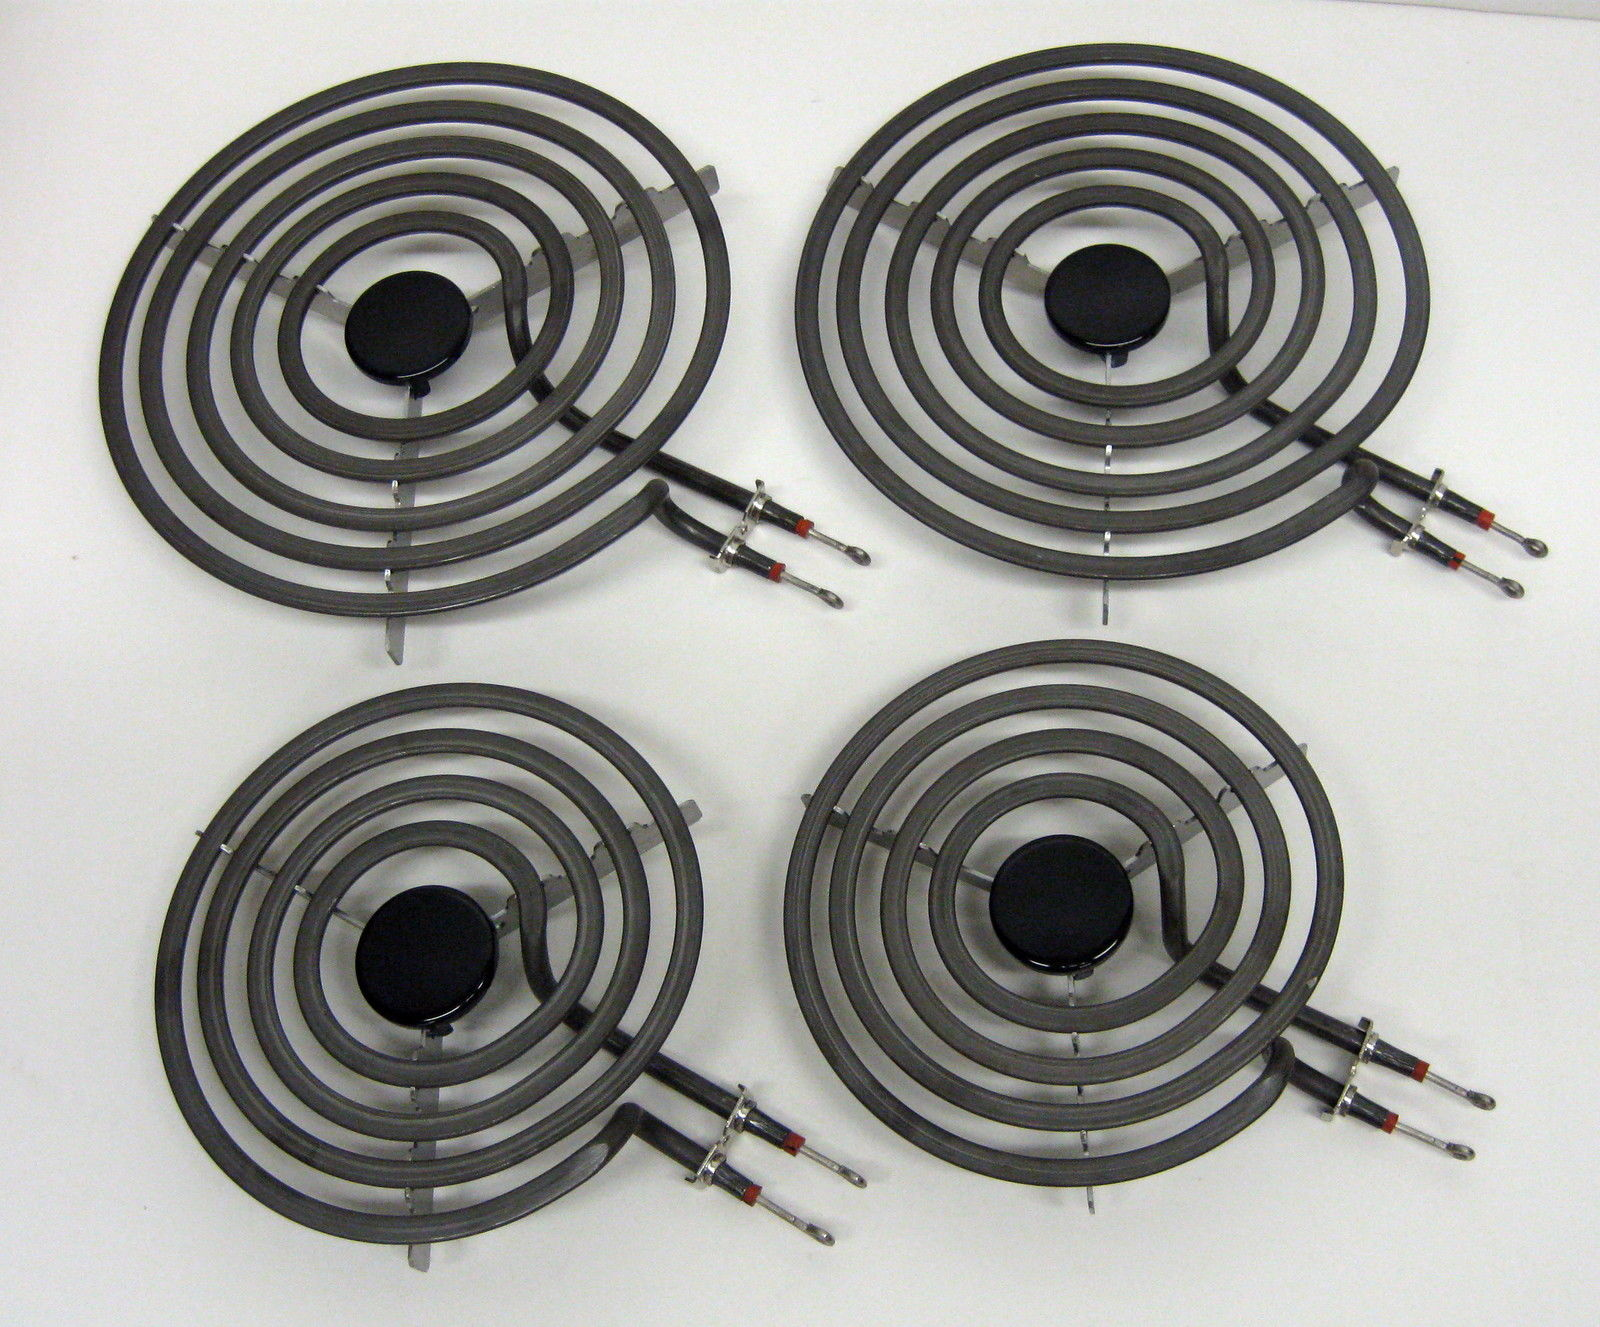 Mp22ya Electric Range Burner Element Unit Set 2 Mp15ya 6